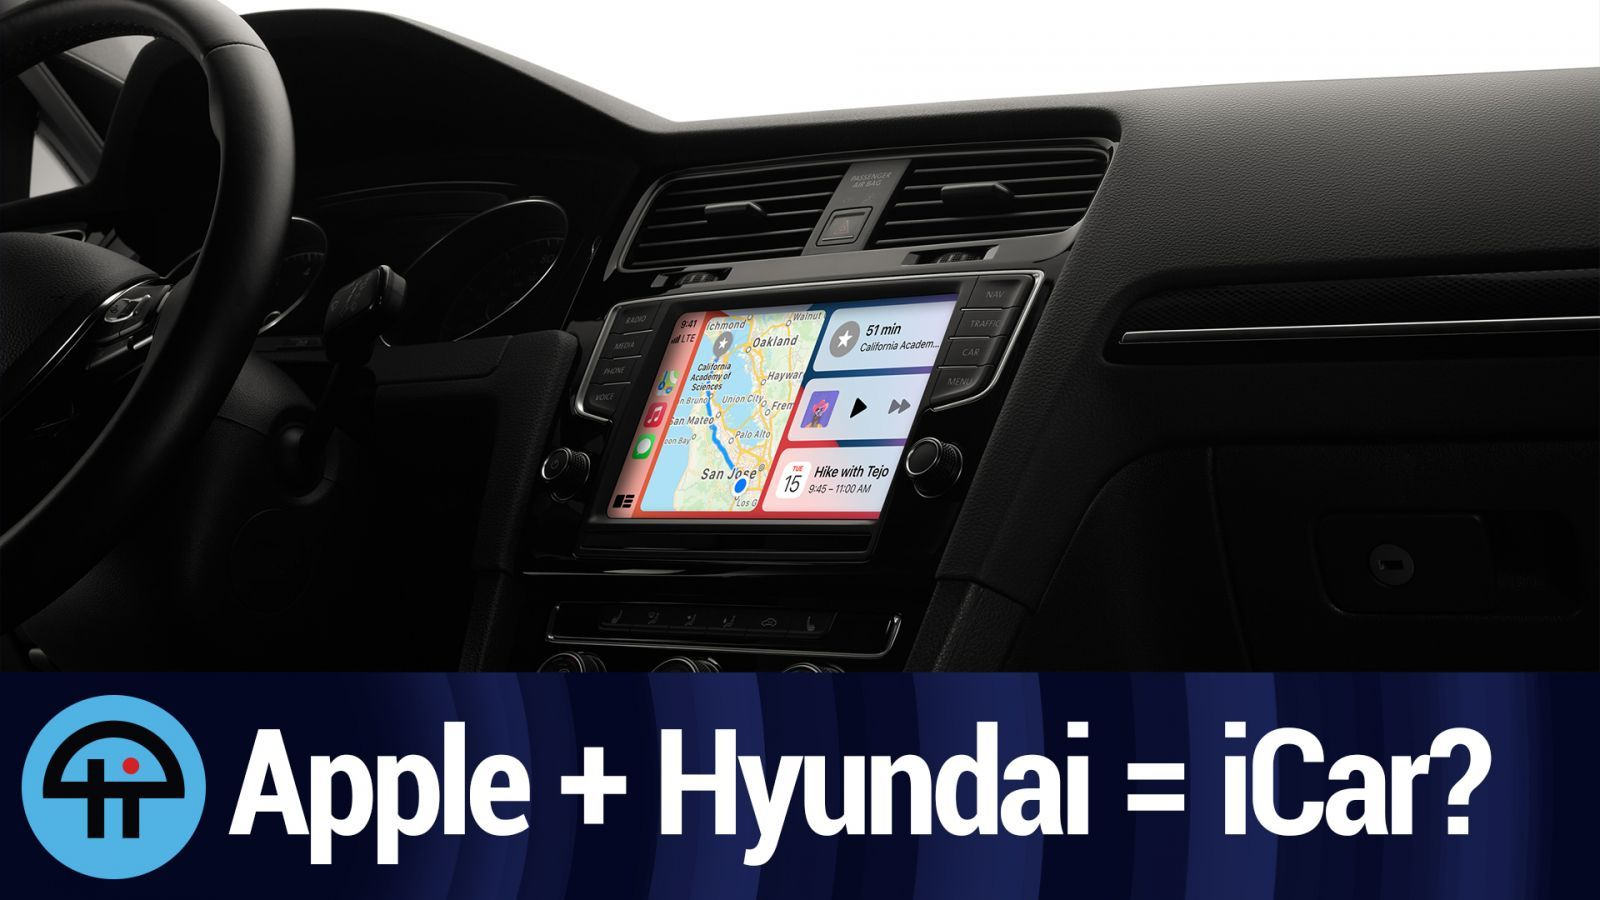 Apple Working With Hyundai on Apple Car Project? | TWiT Bits